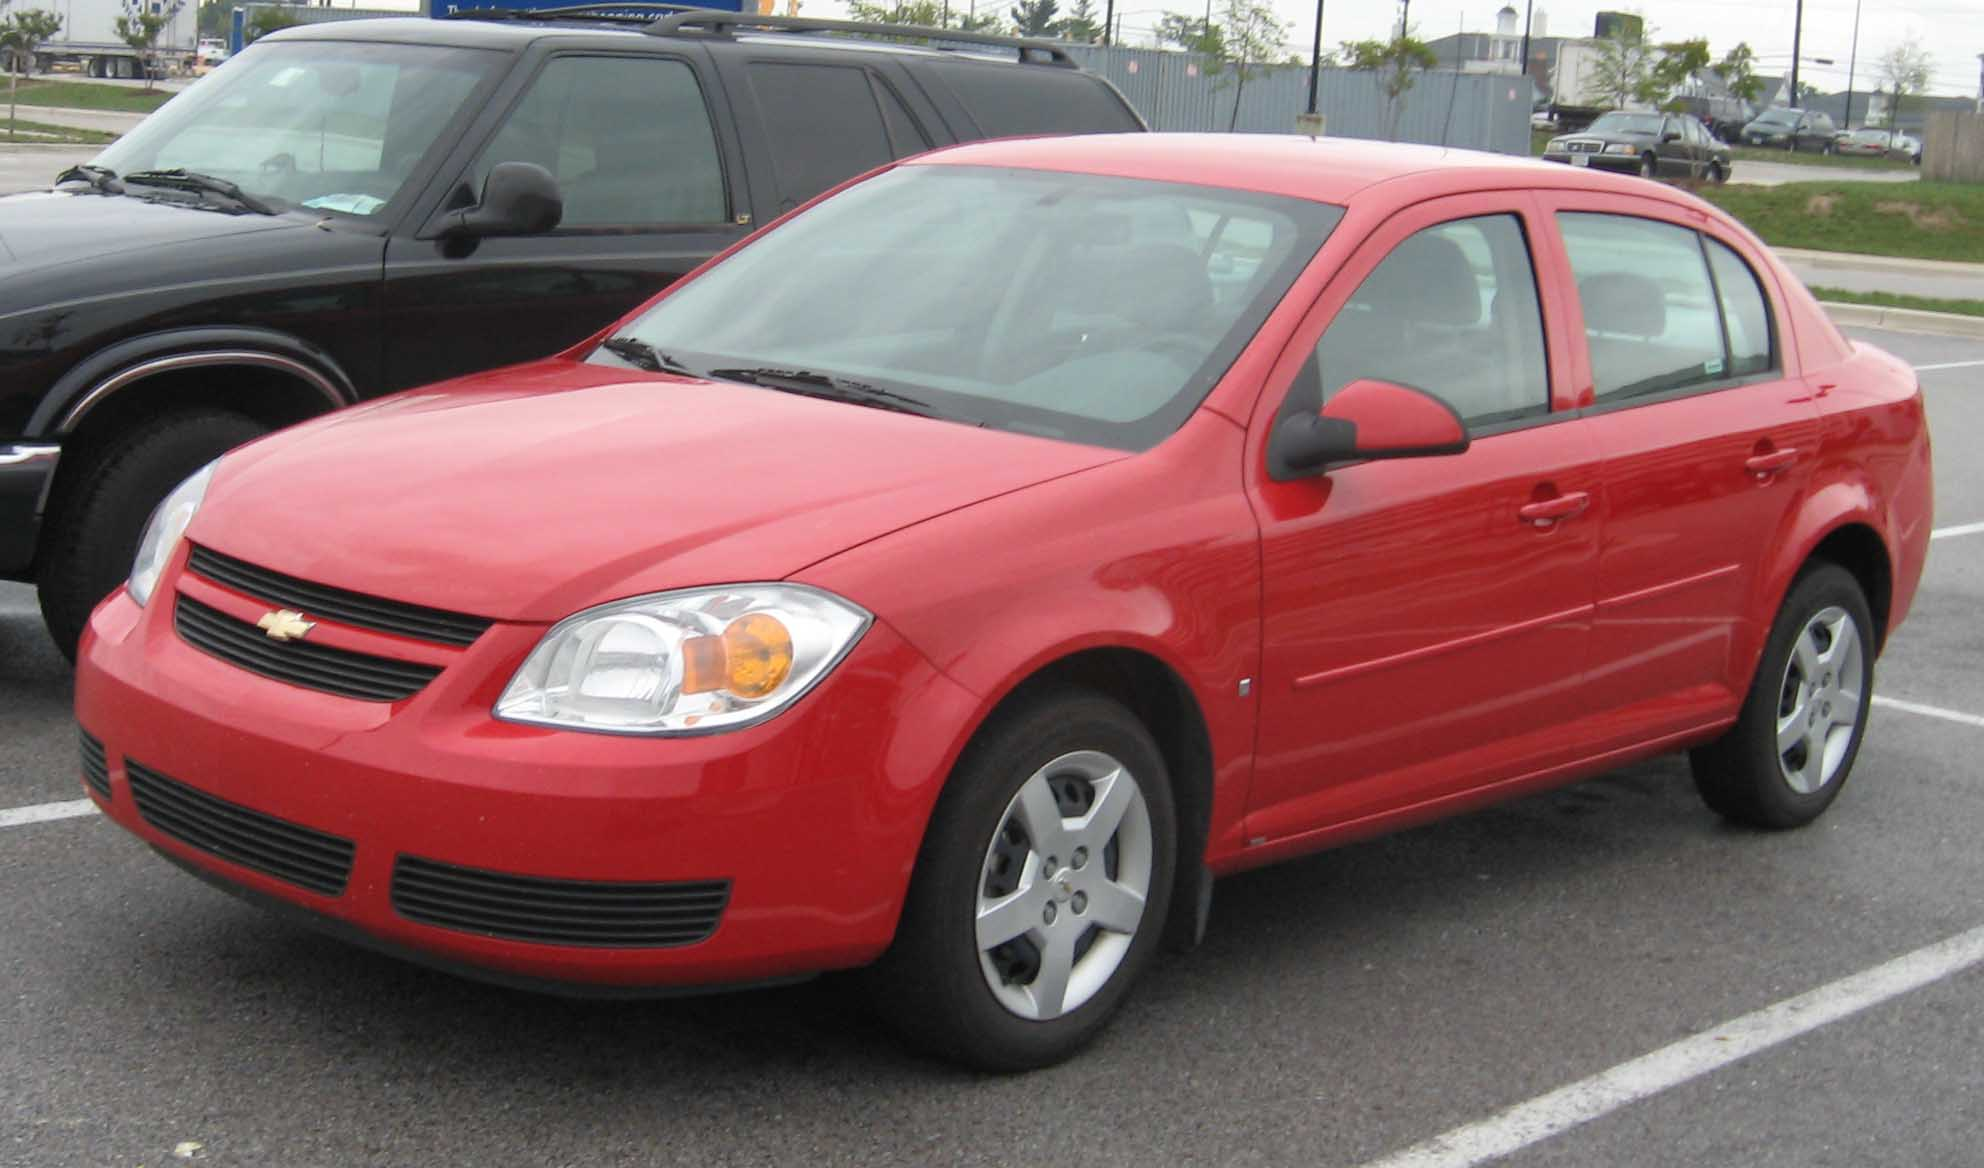 Chevrolet Cobalt red #1